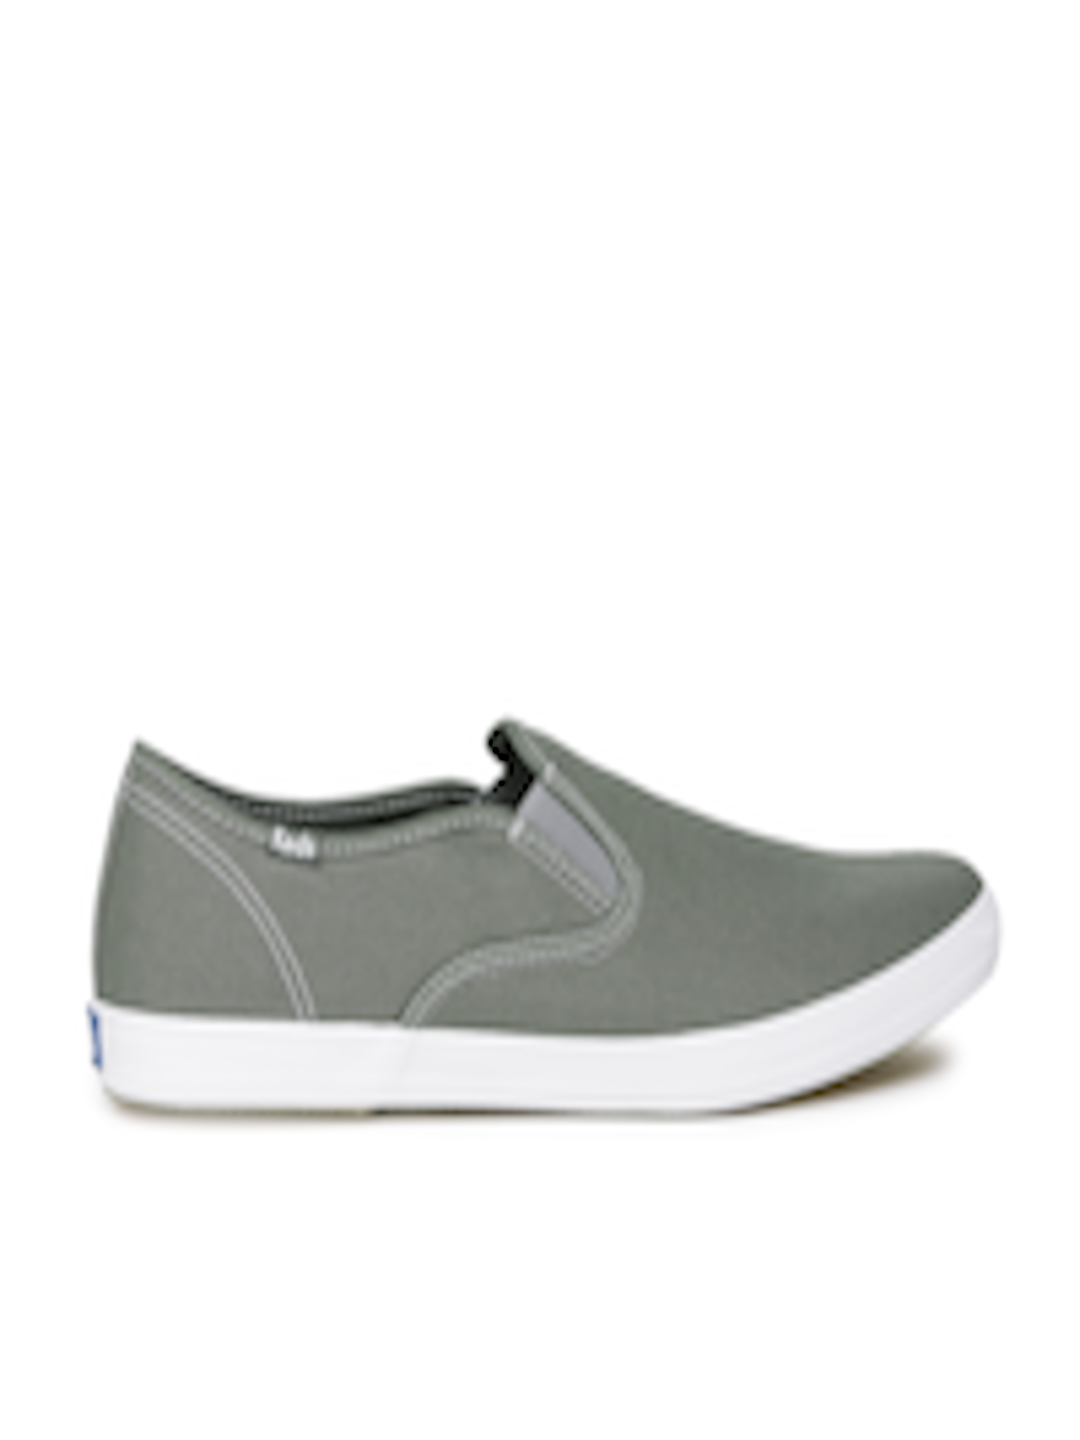 5a6b518ad71db Buy Keds Men Grey Slip On Sneakers - Casual Shoes for Men 2013845 ...